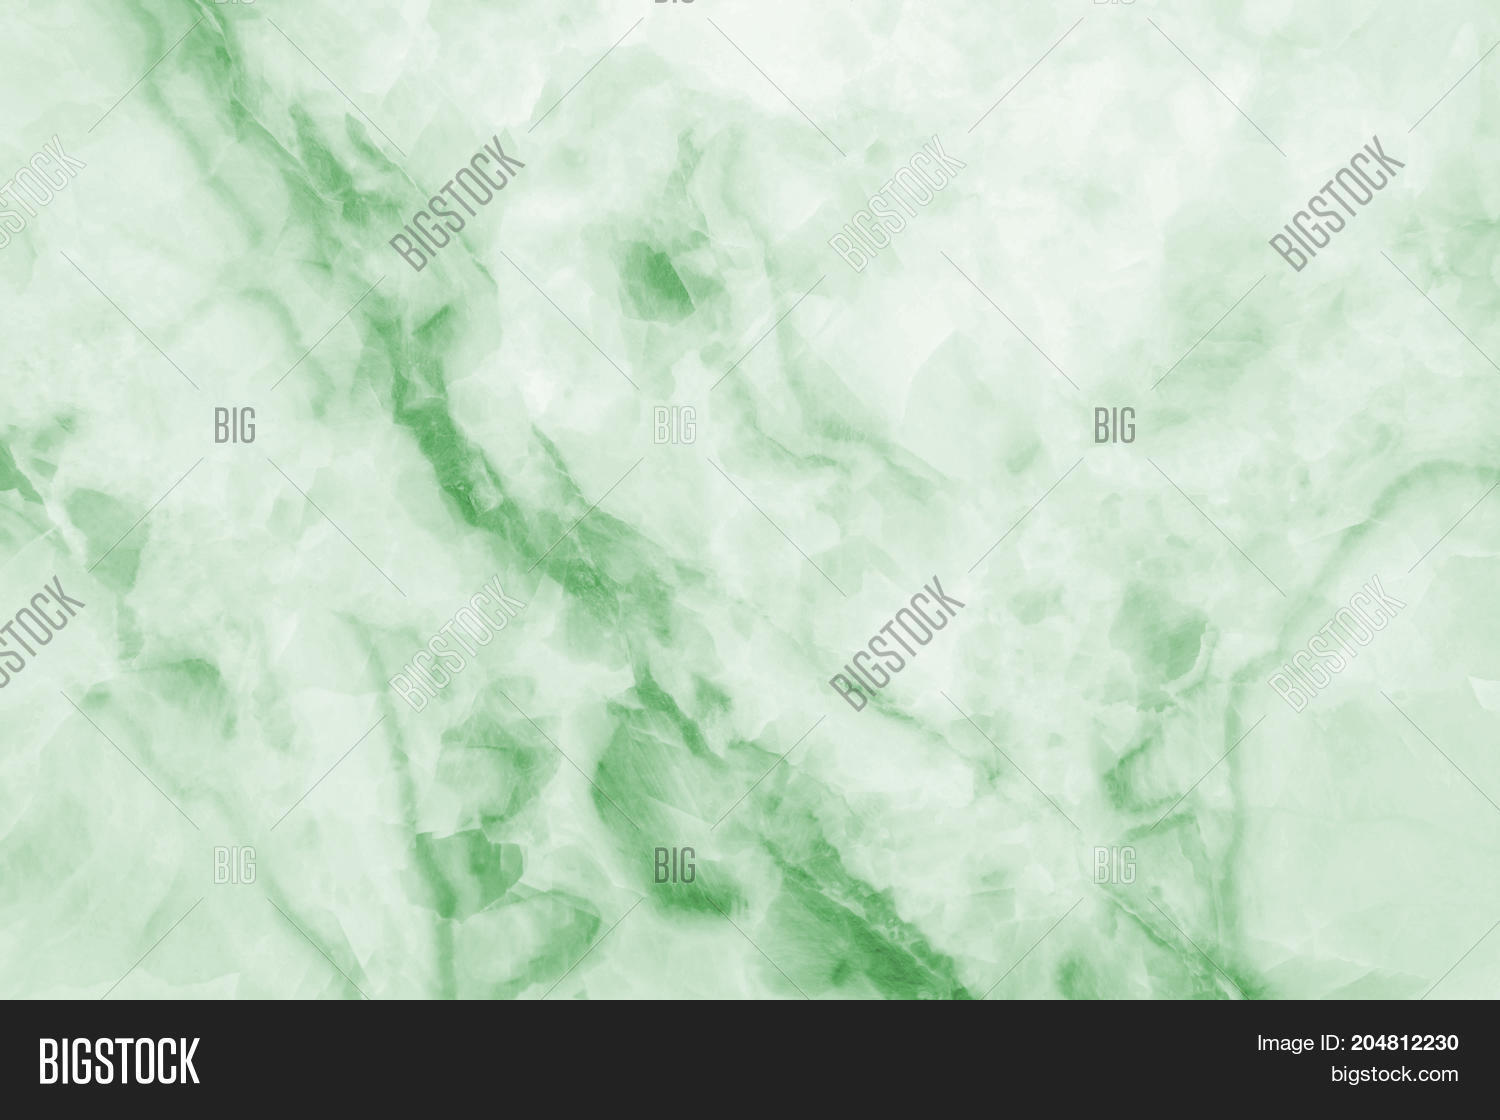 Green Marble Pattern Image Photo Free Trial Bigstock